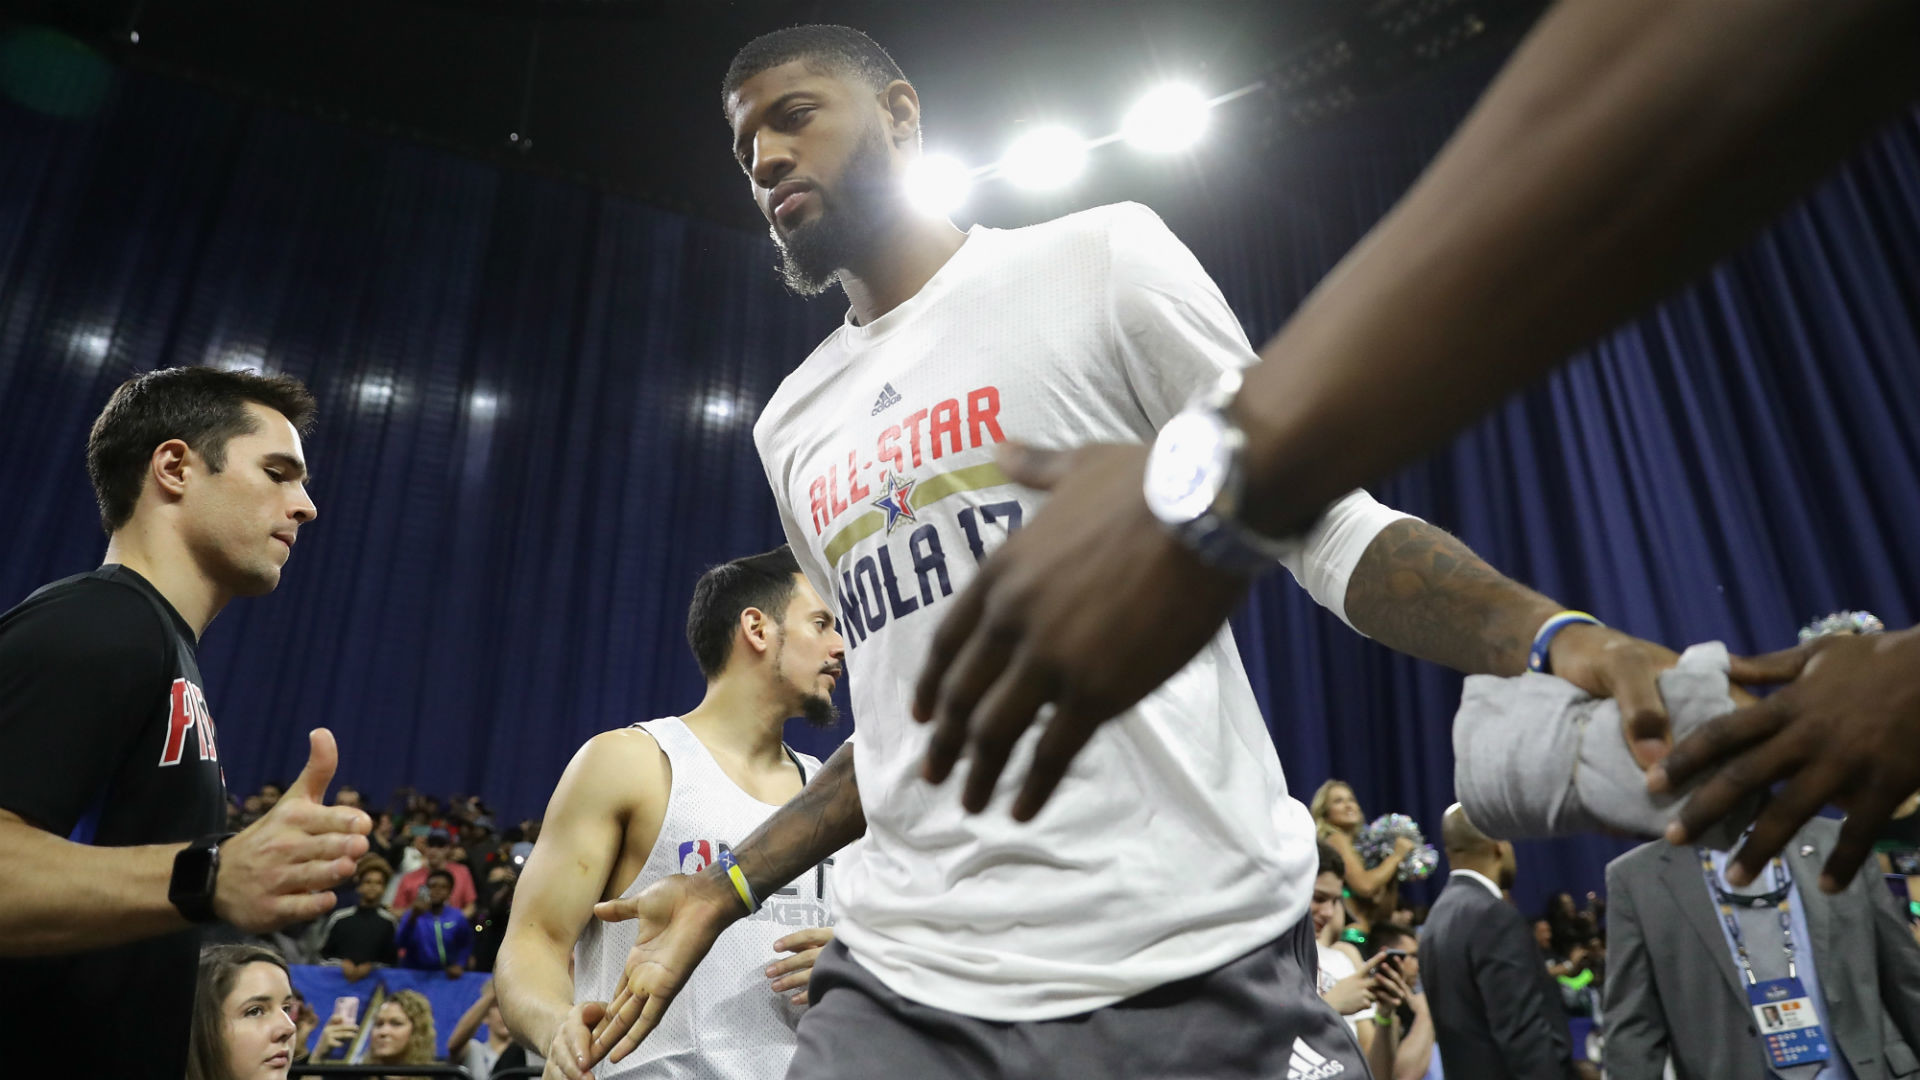 NBA trade rumors: Lakers inquired about Paul George | NBA | Sporting News